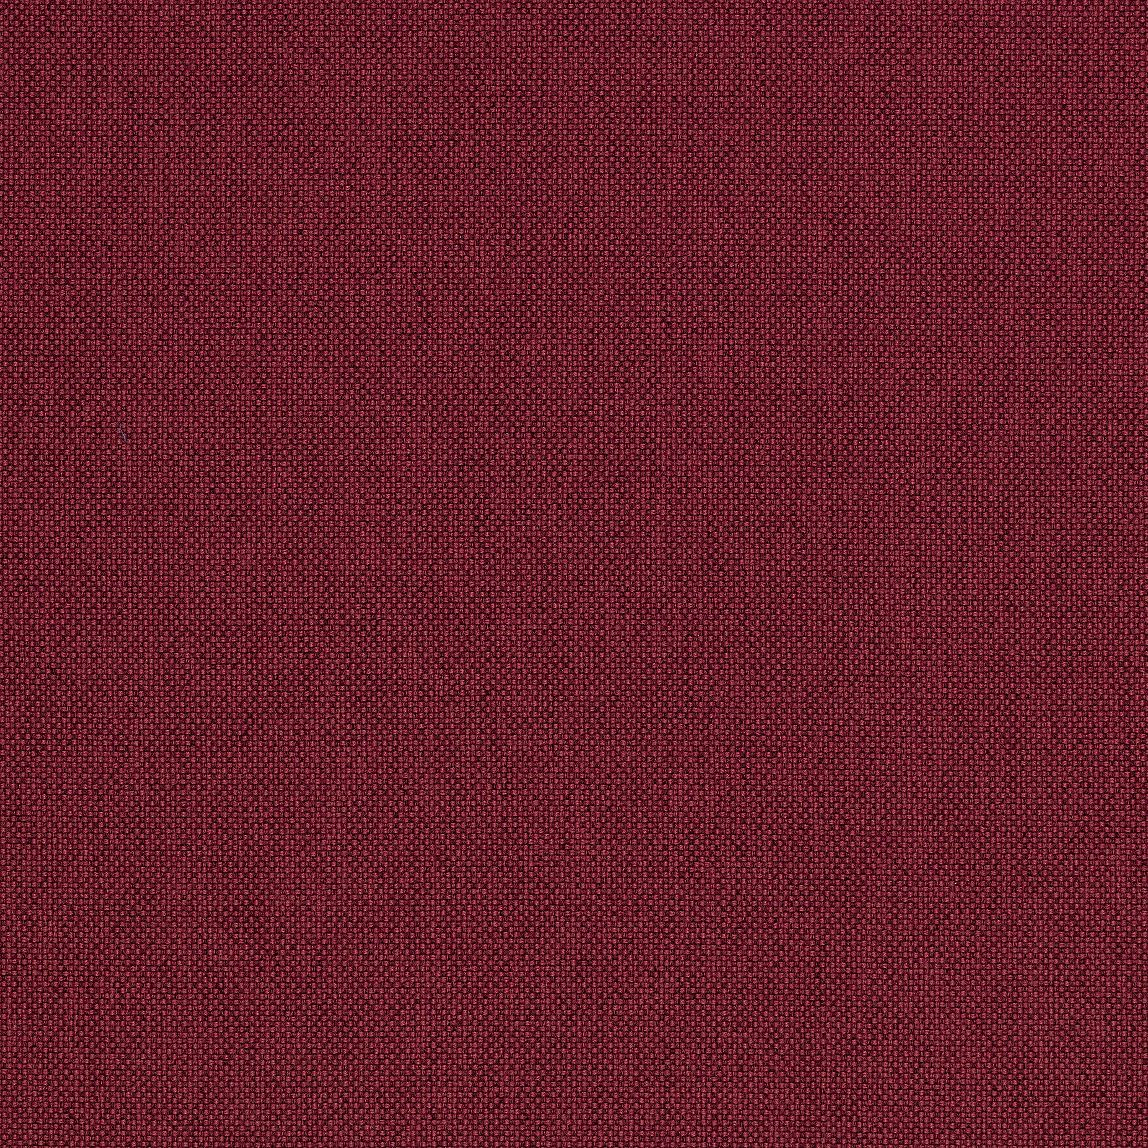 Mode Barberry Swatch